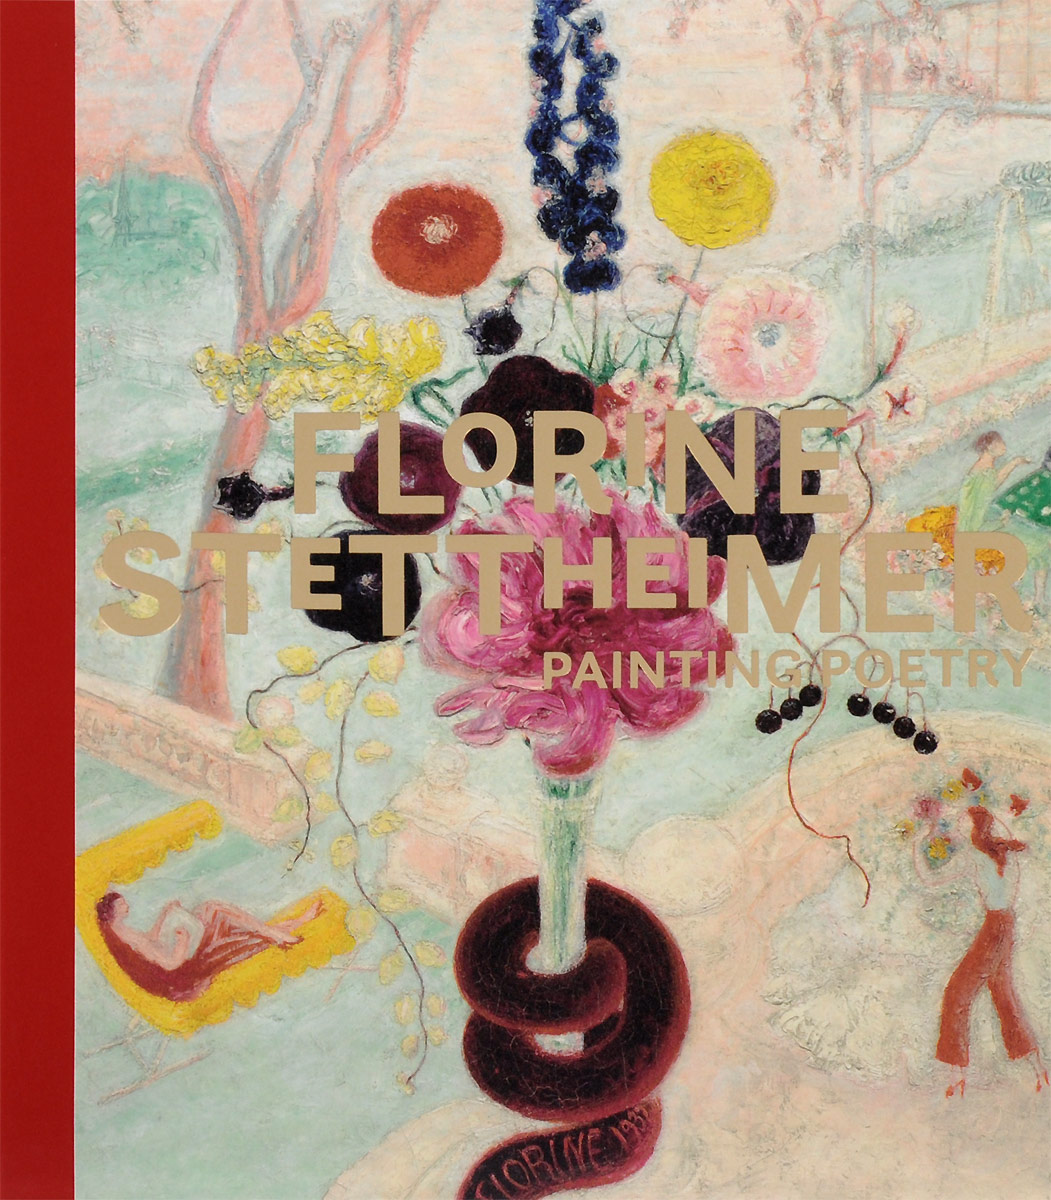 Florine Stettheimer: Painting Poetry a new lease of death